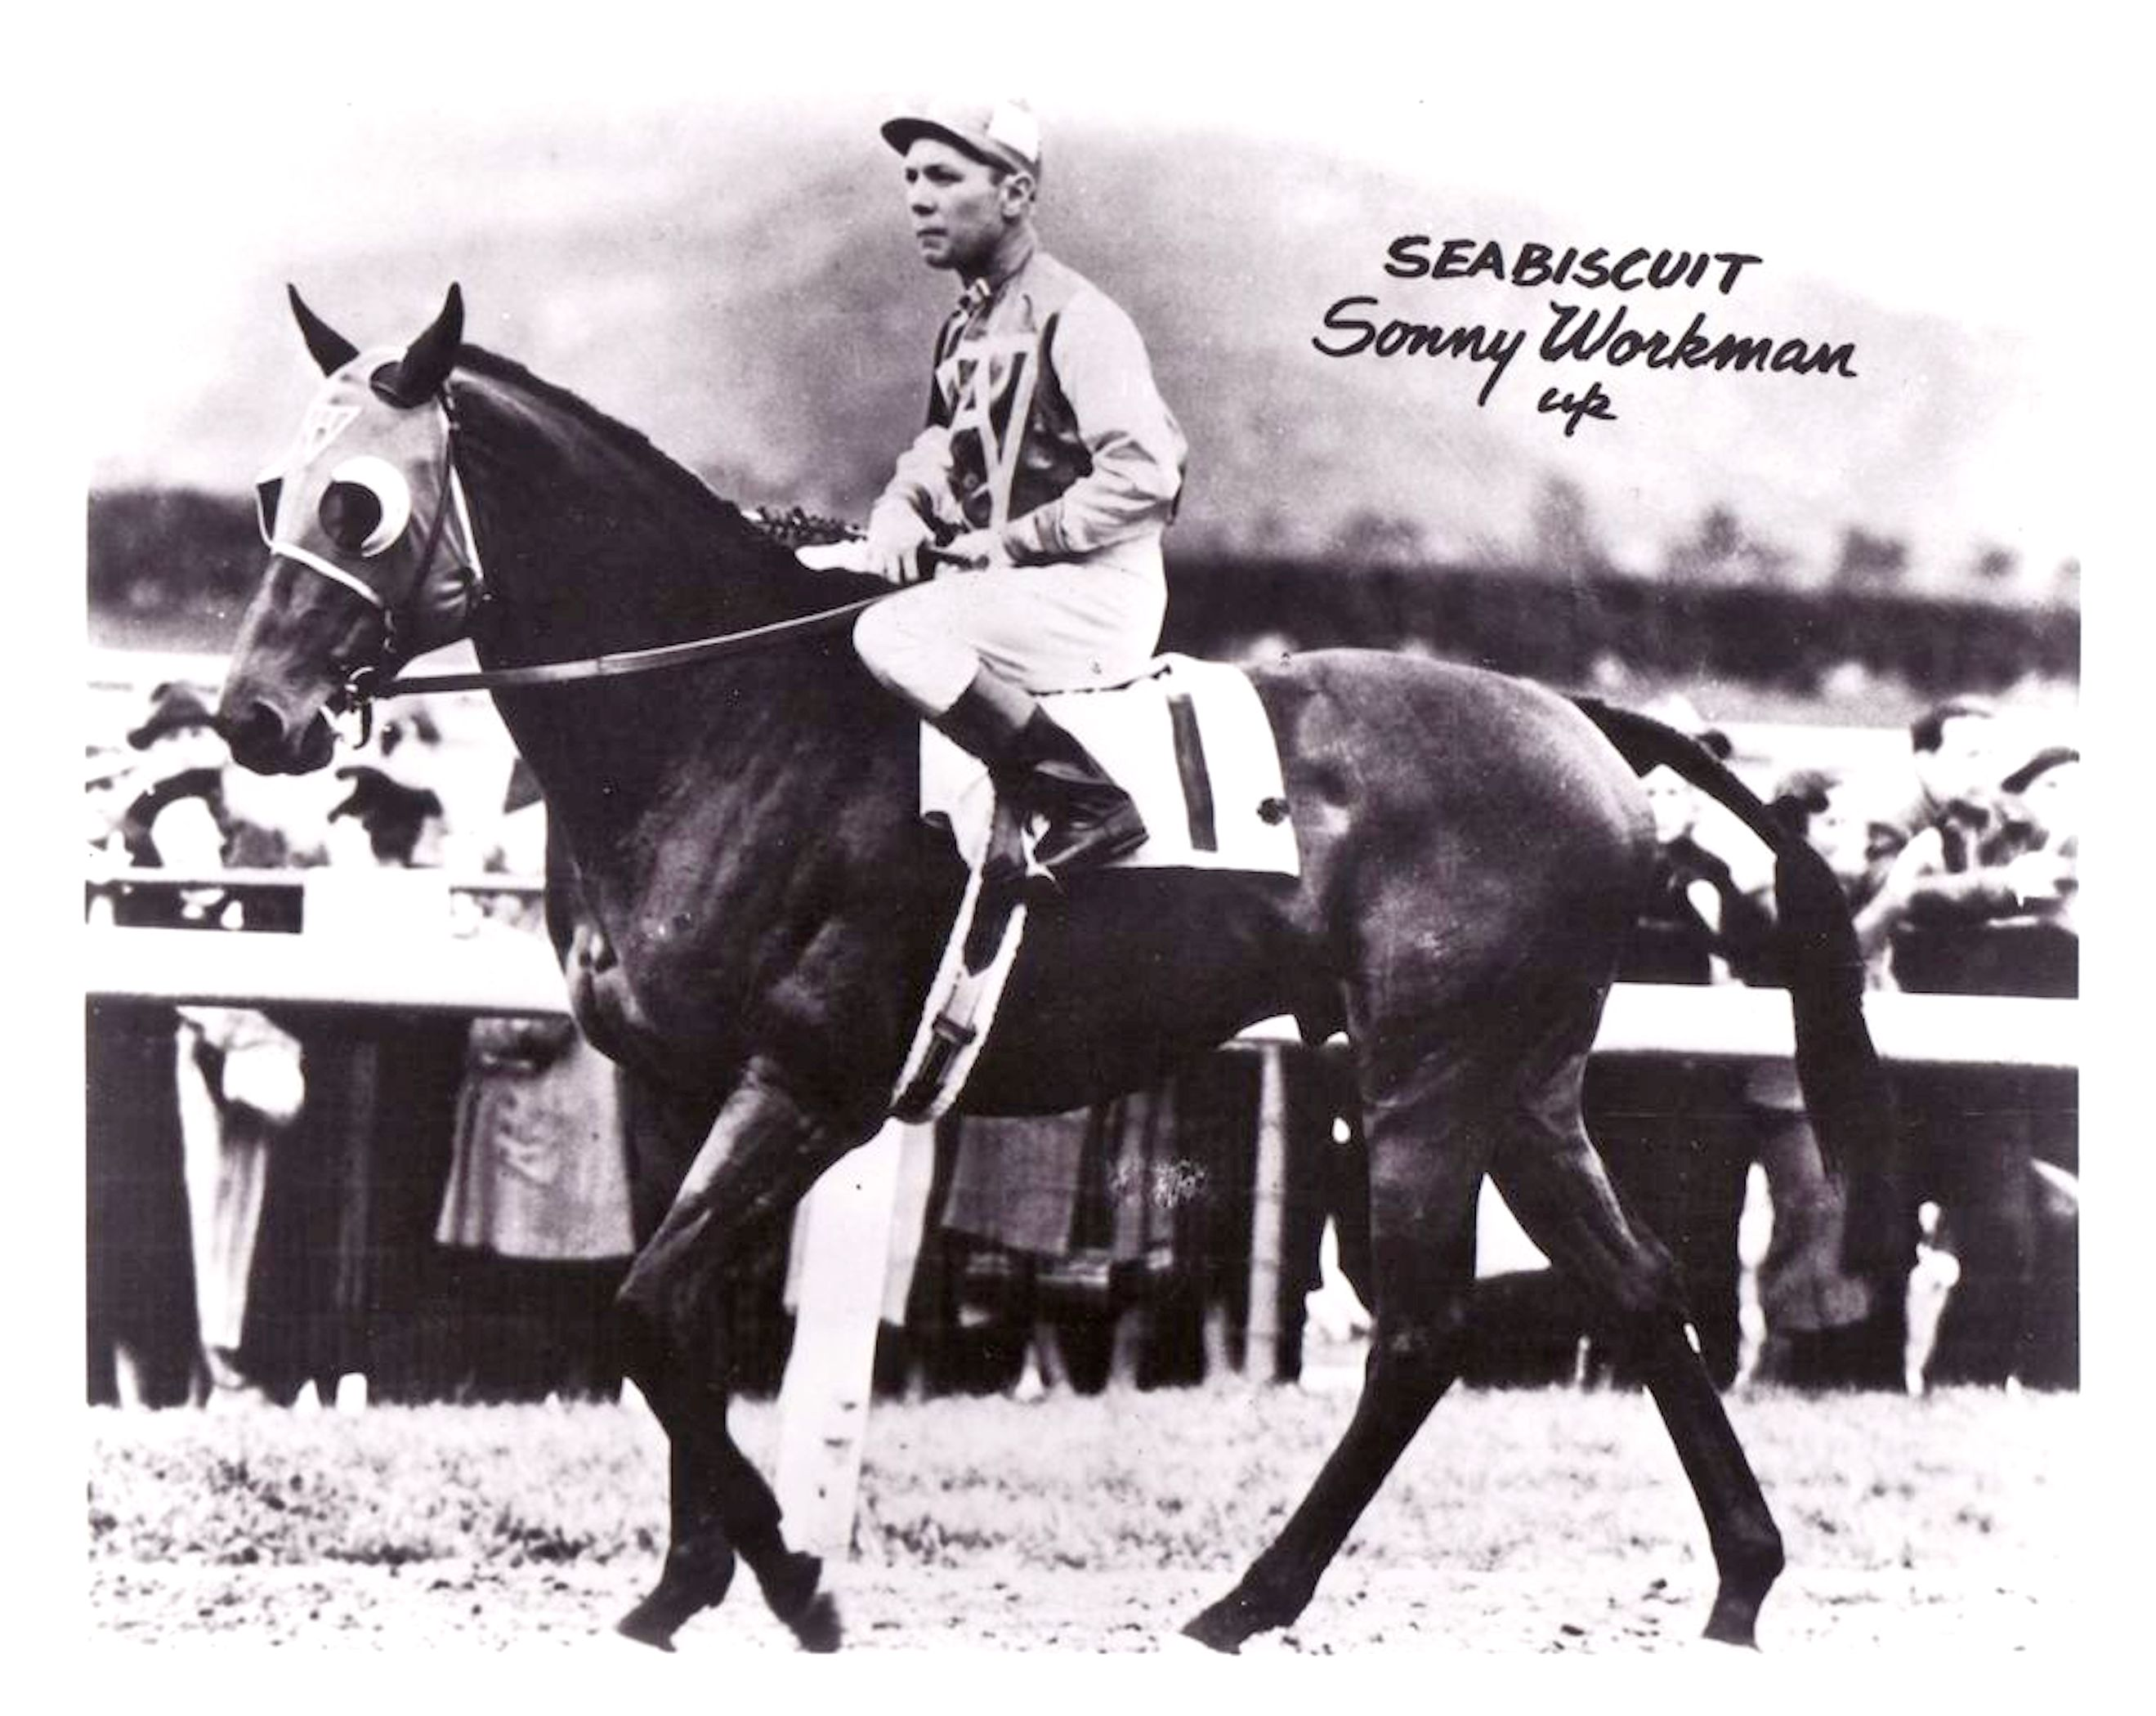 Seabiscuit with Raymond Workman up (C. C. Cook)